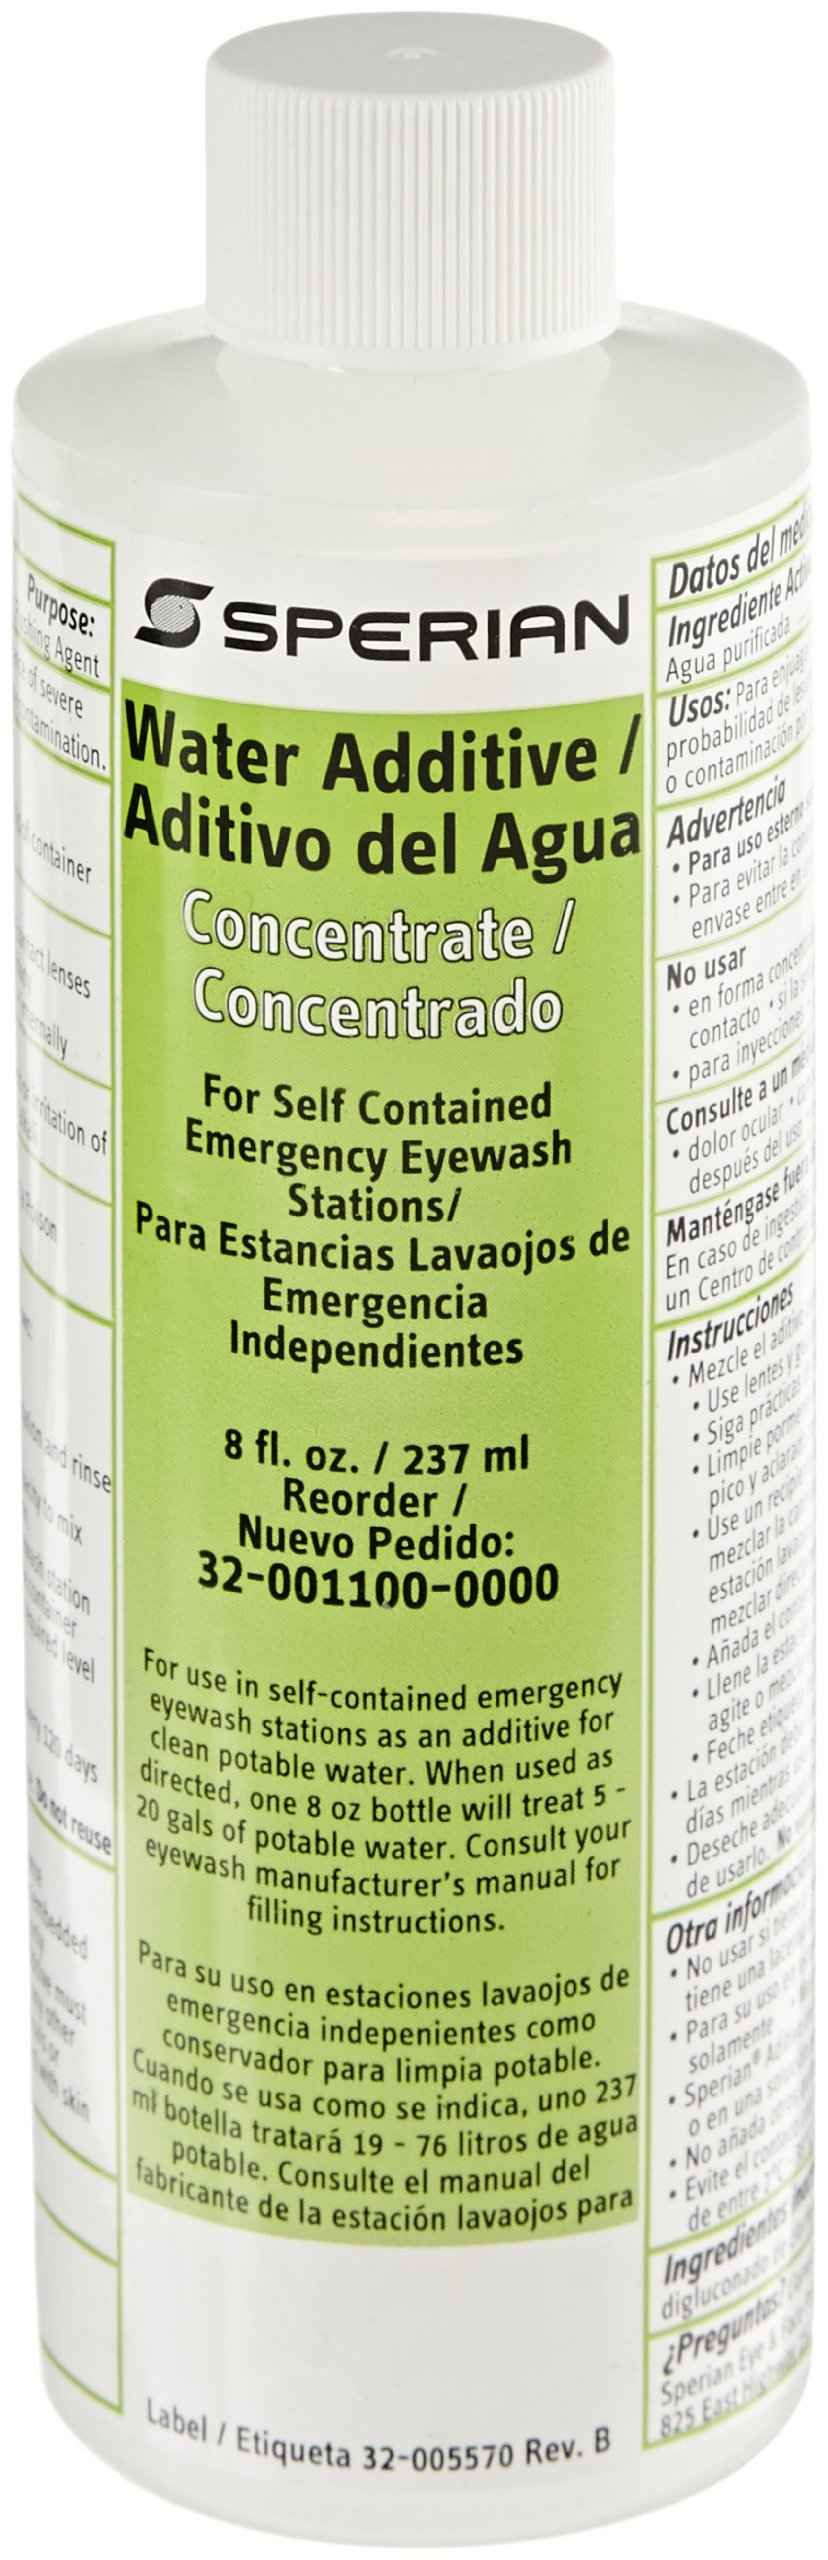 Fendall Porta Stream I, II, III Emergency Eye Wash Station Water Additive, 8 oz. / 237 ml (4 Per Case)